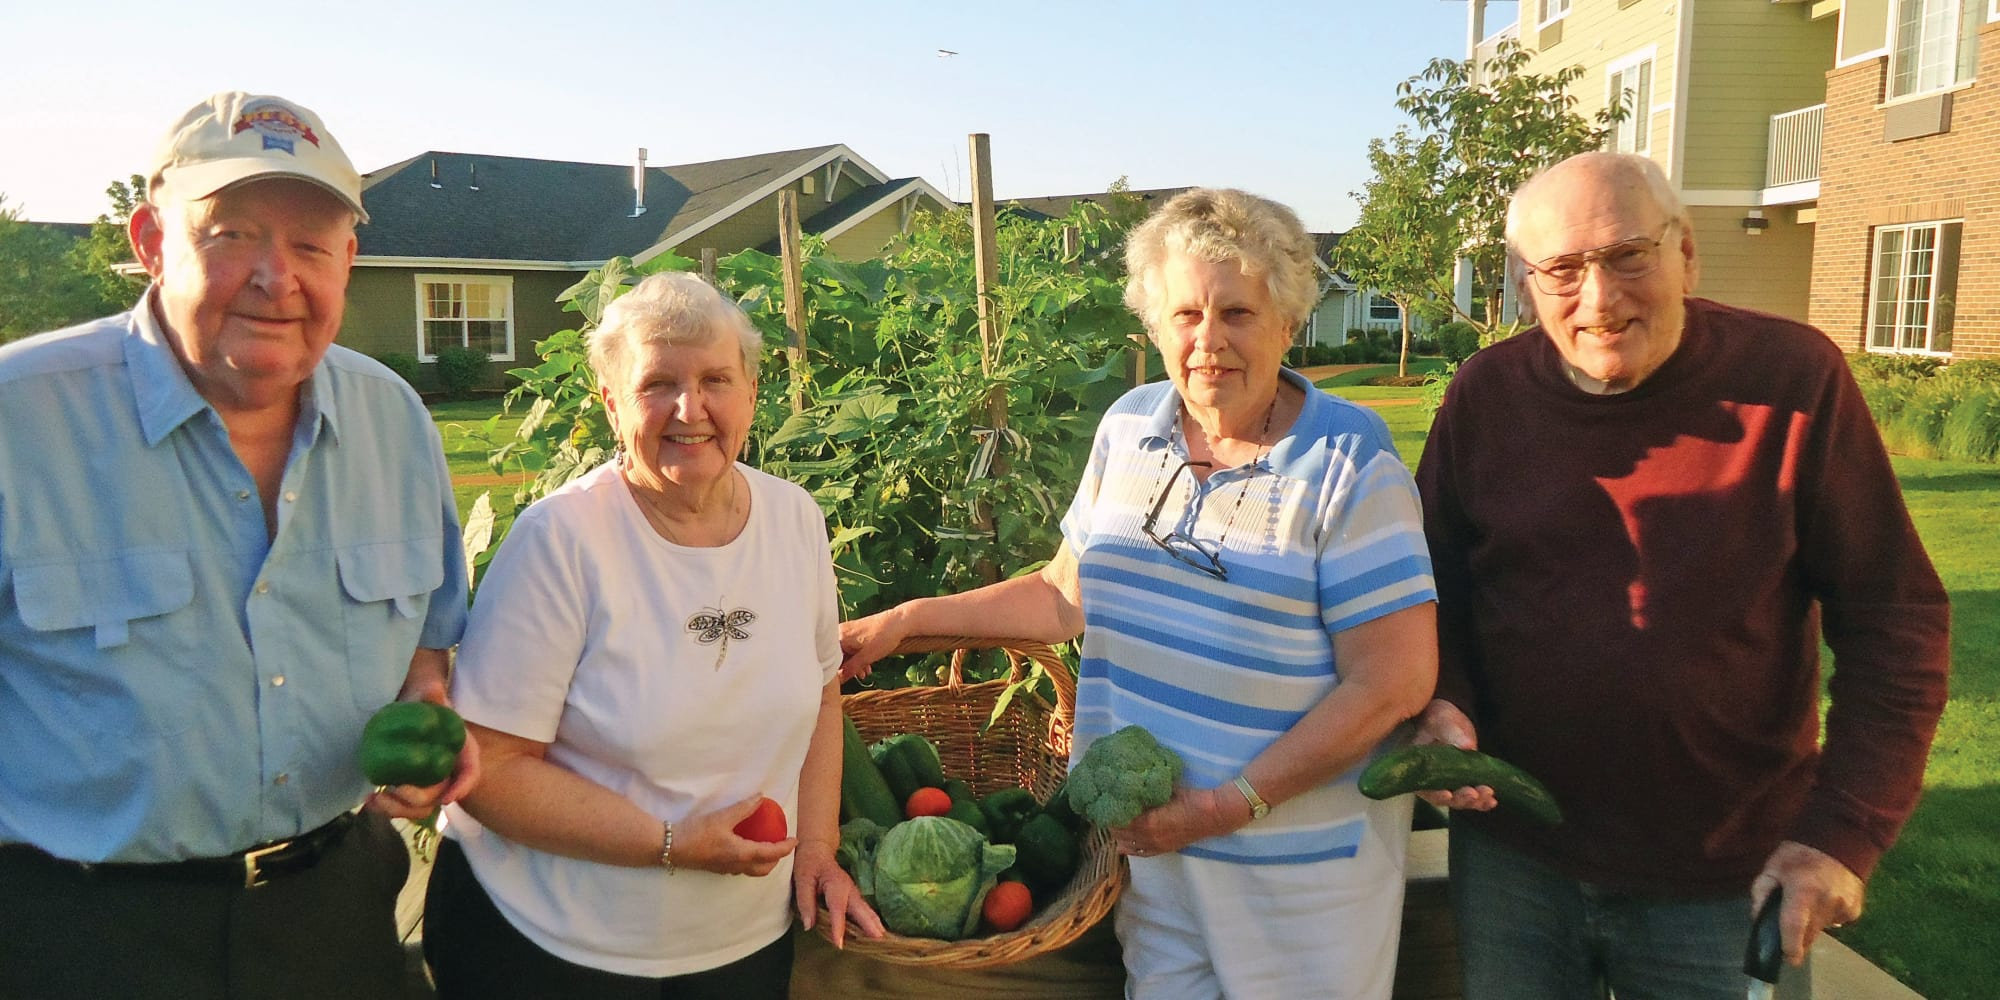 A group of residents harvesting the garden at Guelph Lake Commons in Guelph, Ontario